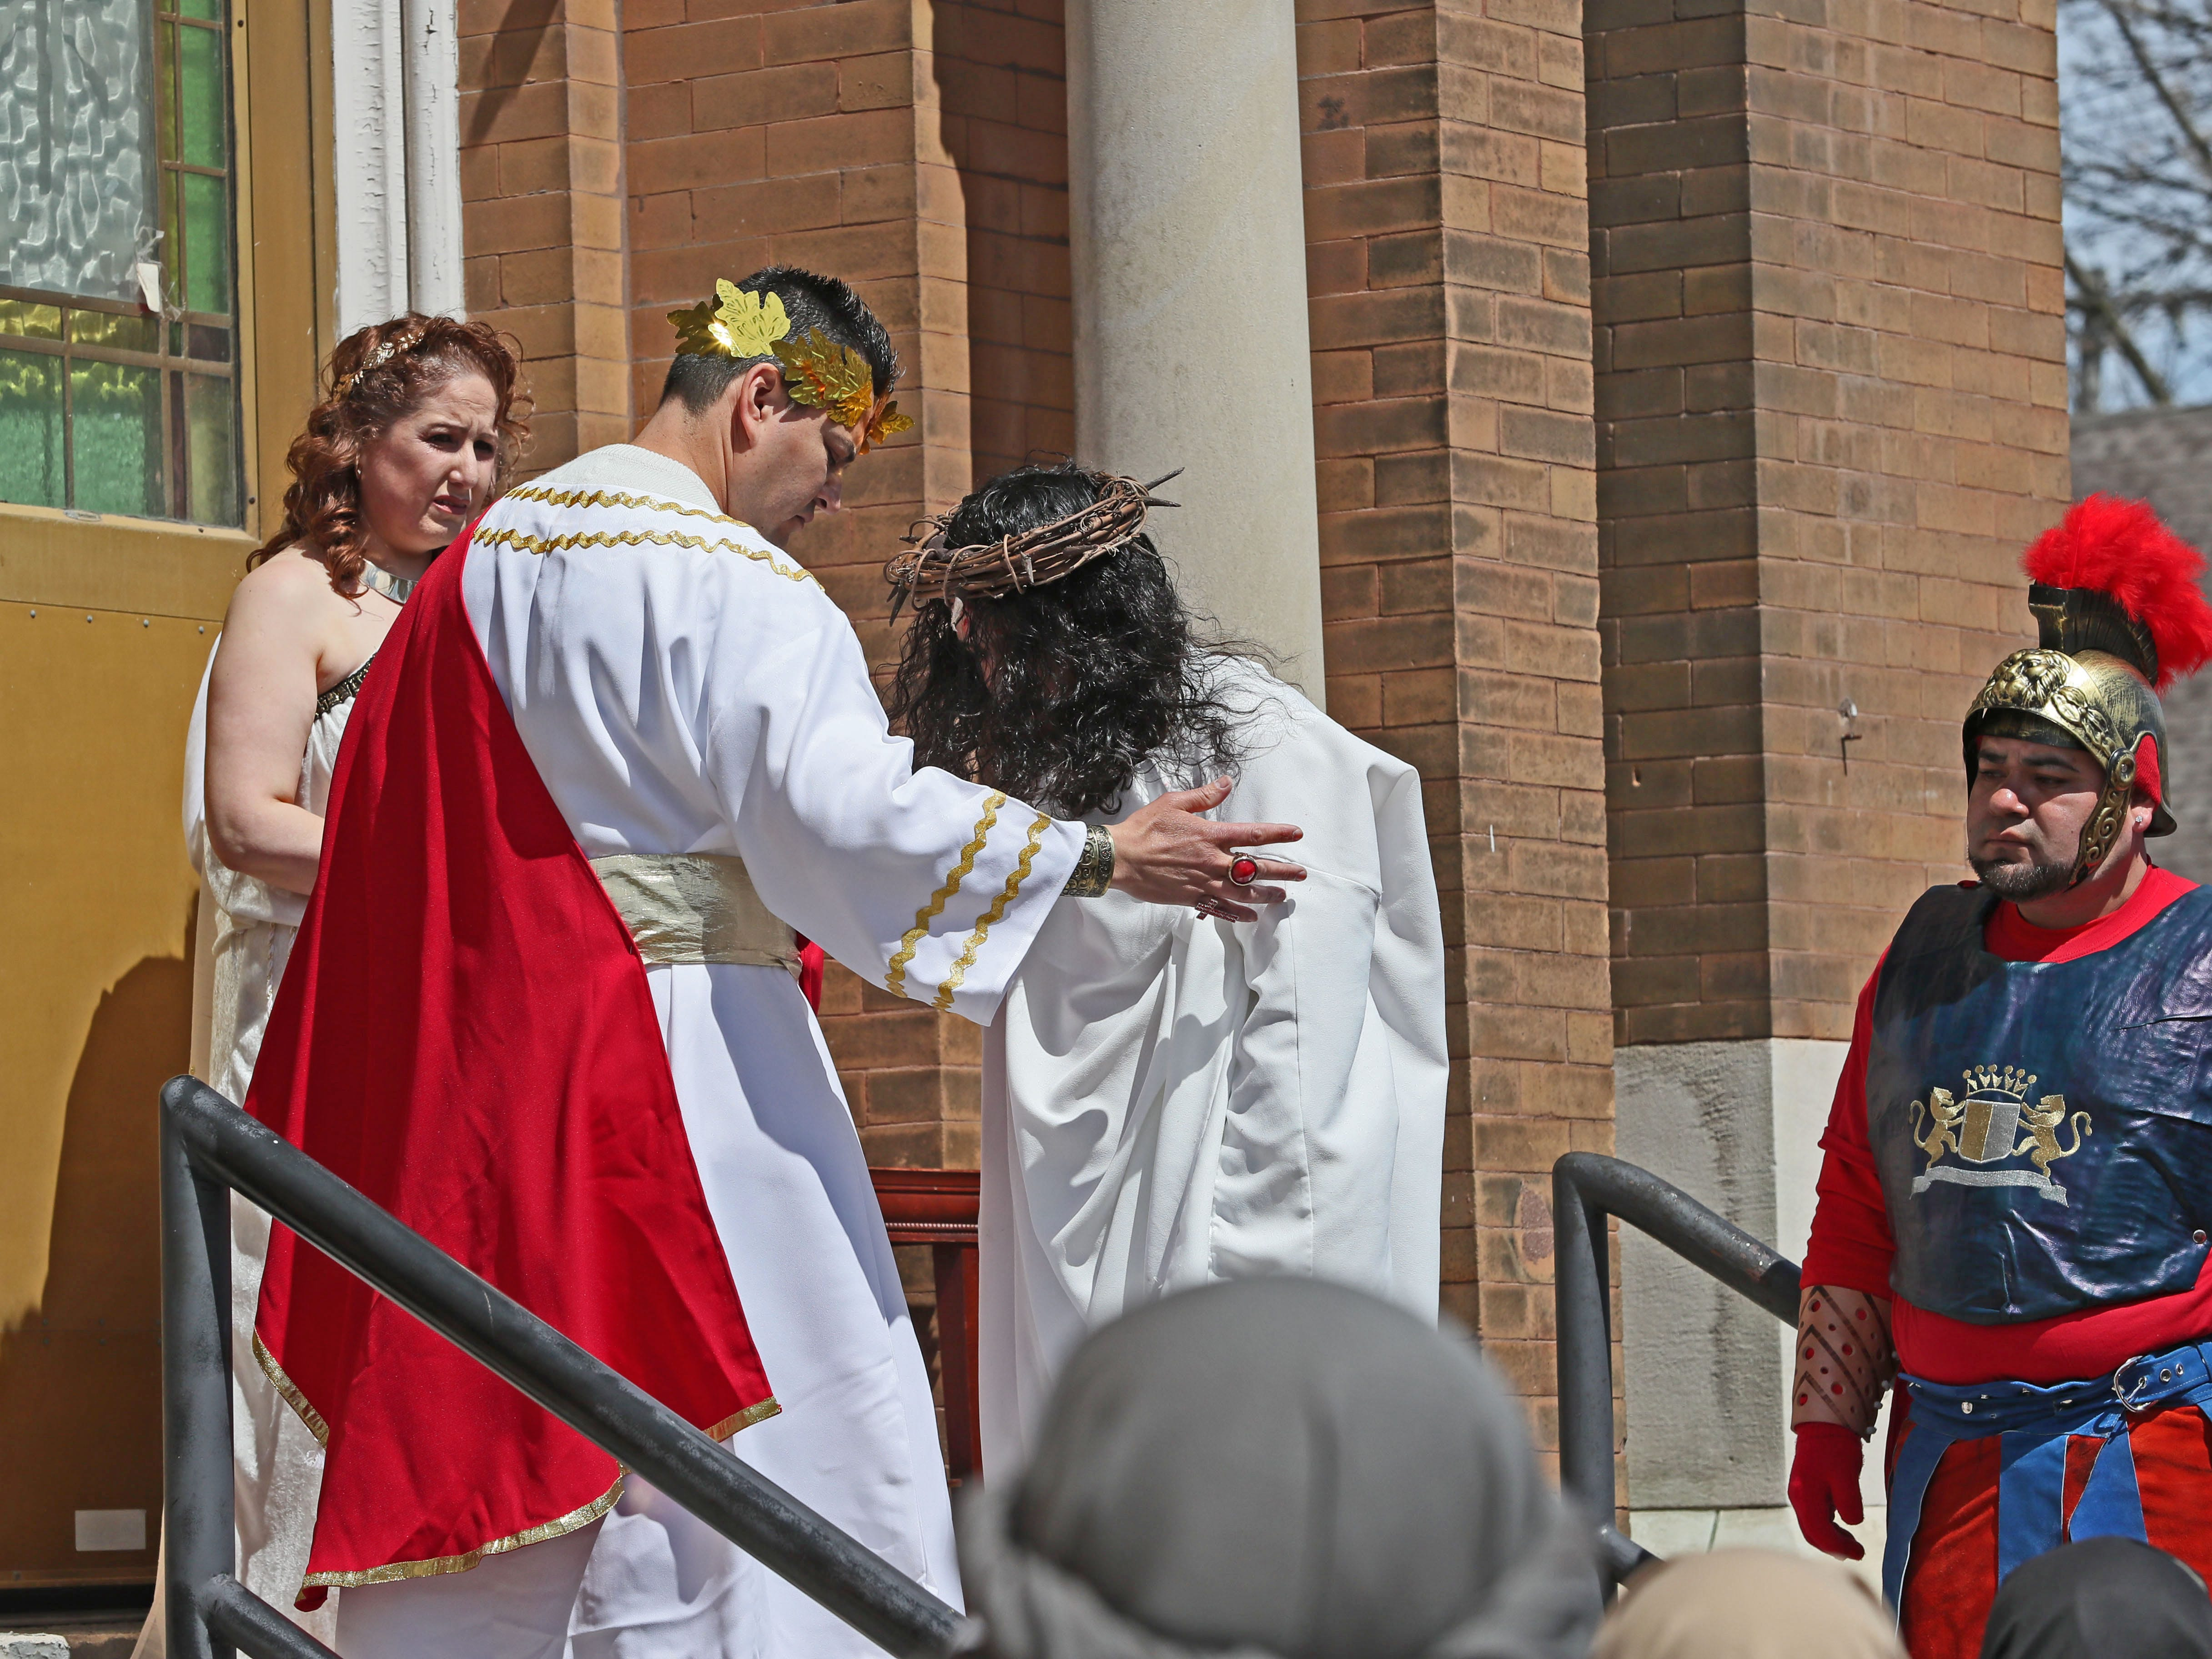 Jesus, played by Pedro Rangel, is judged by Pontius Pilate, left, played by Miguel Tavares.